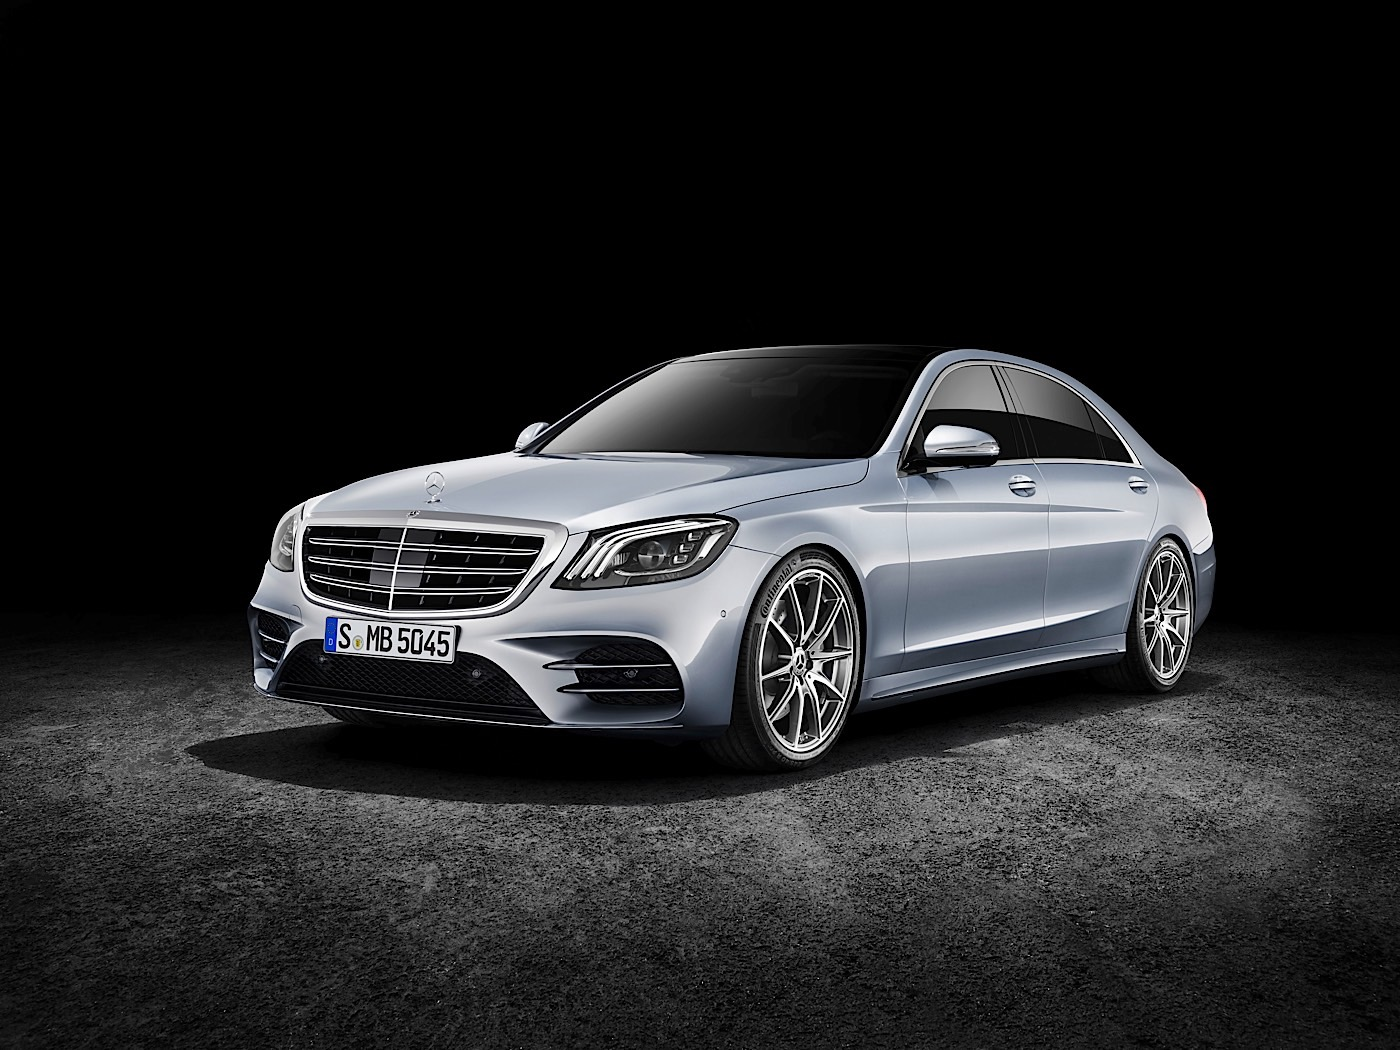 2018 mercedes benz s class w222 facelift brings back the for 2018 mercedes benz s550